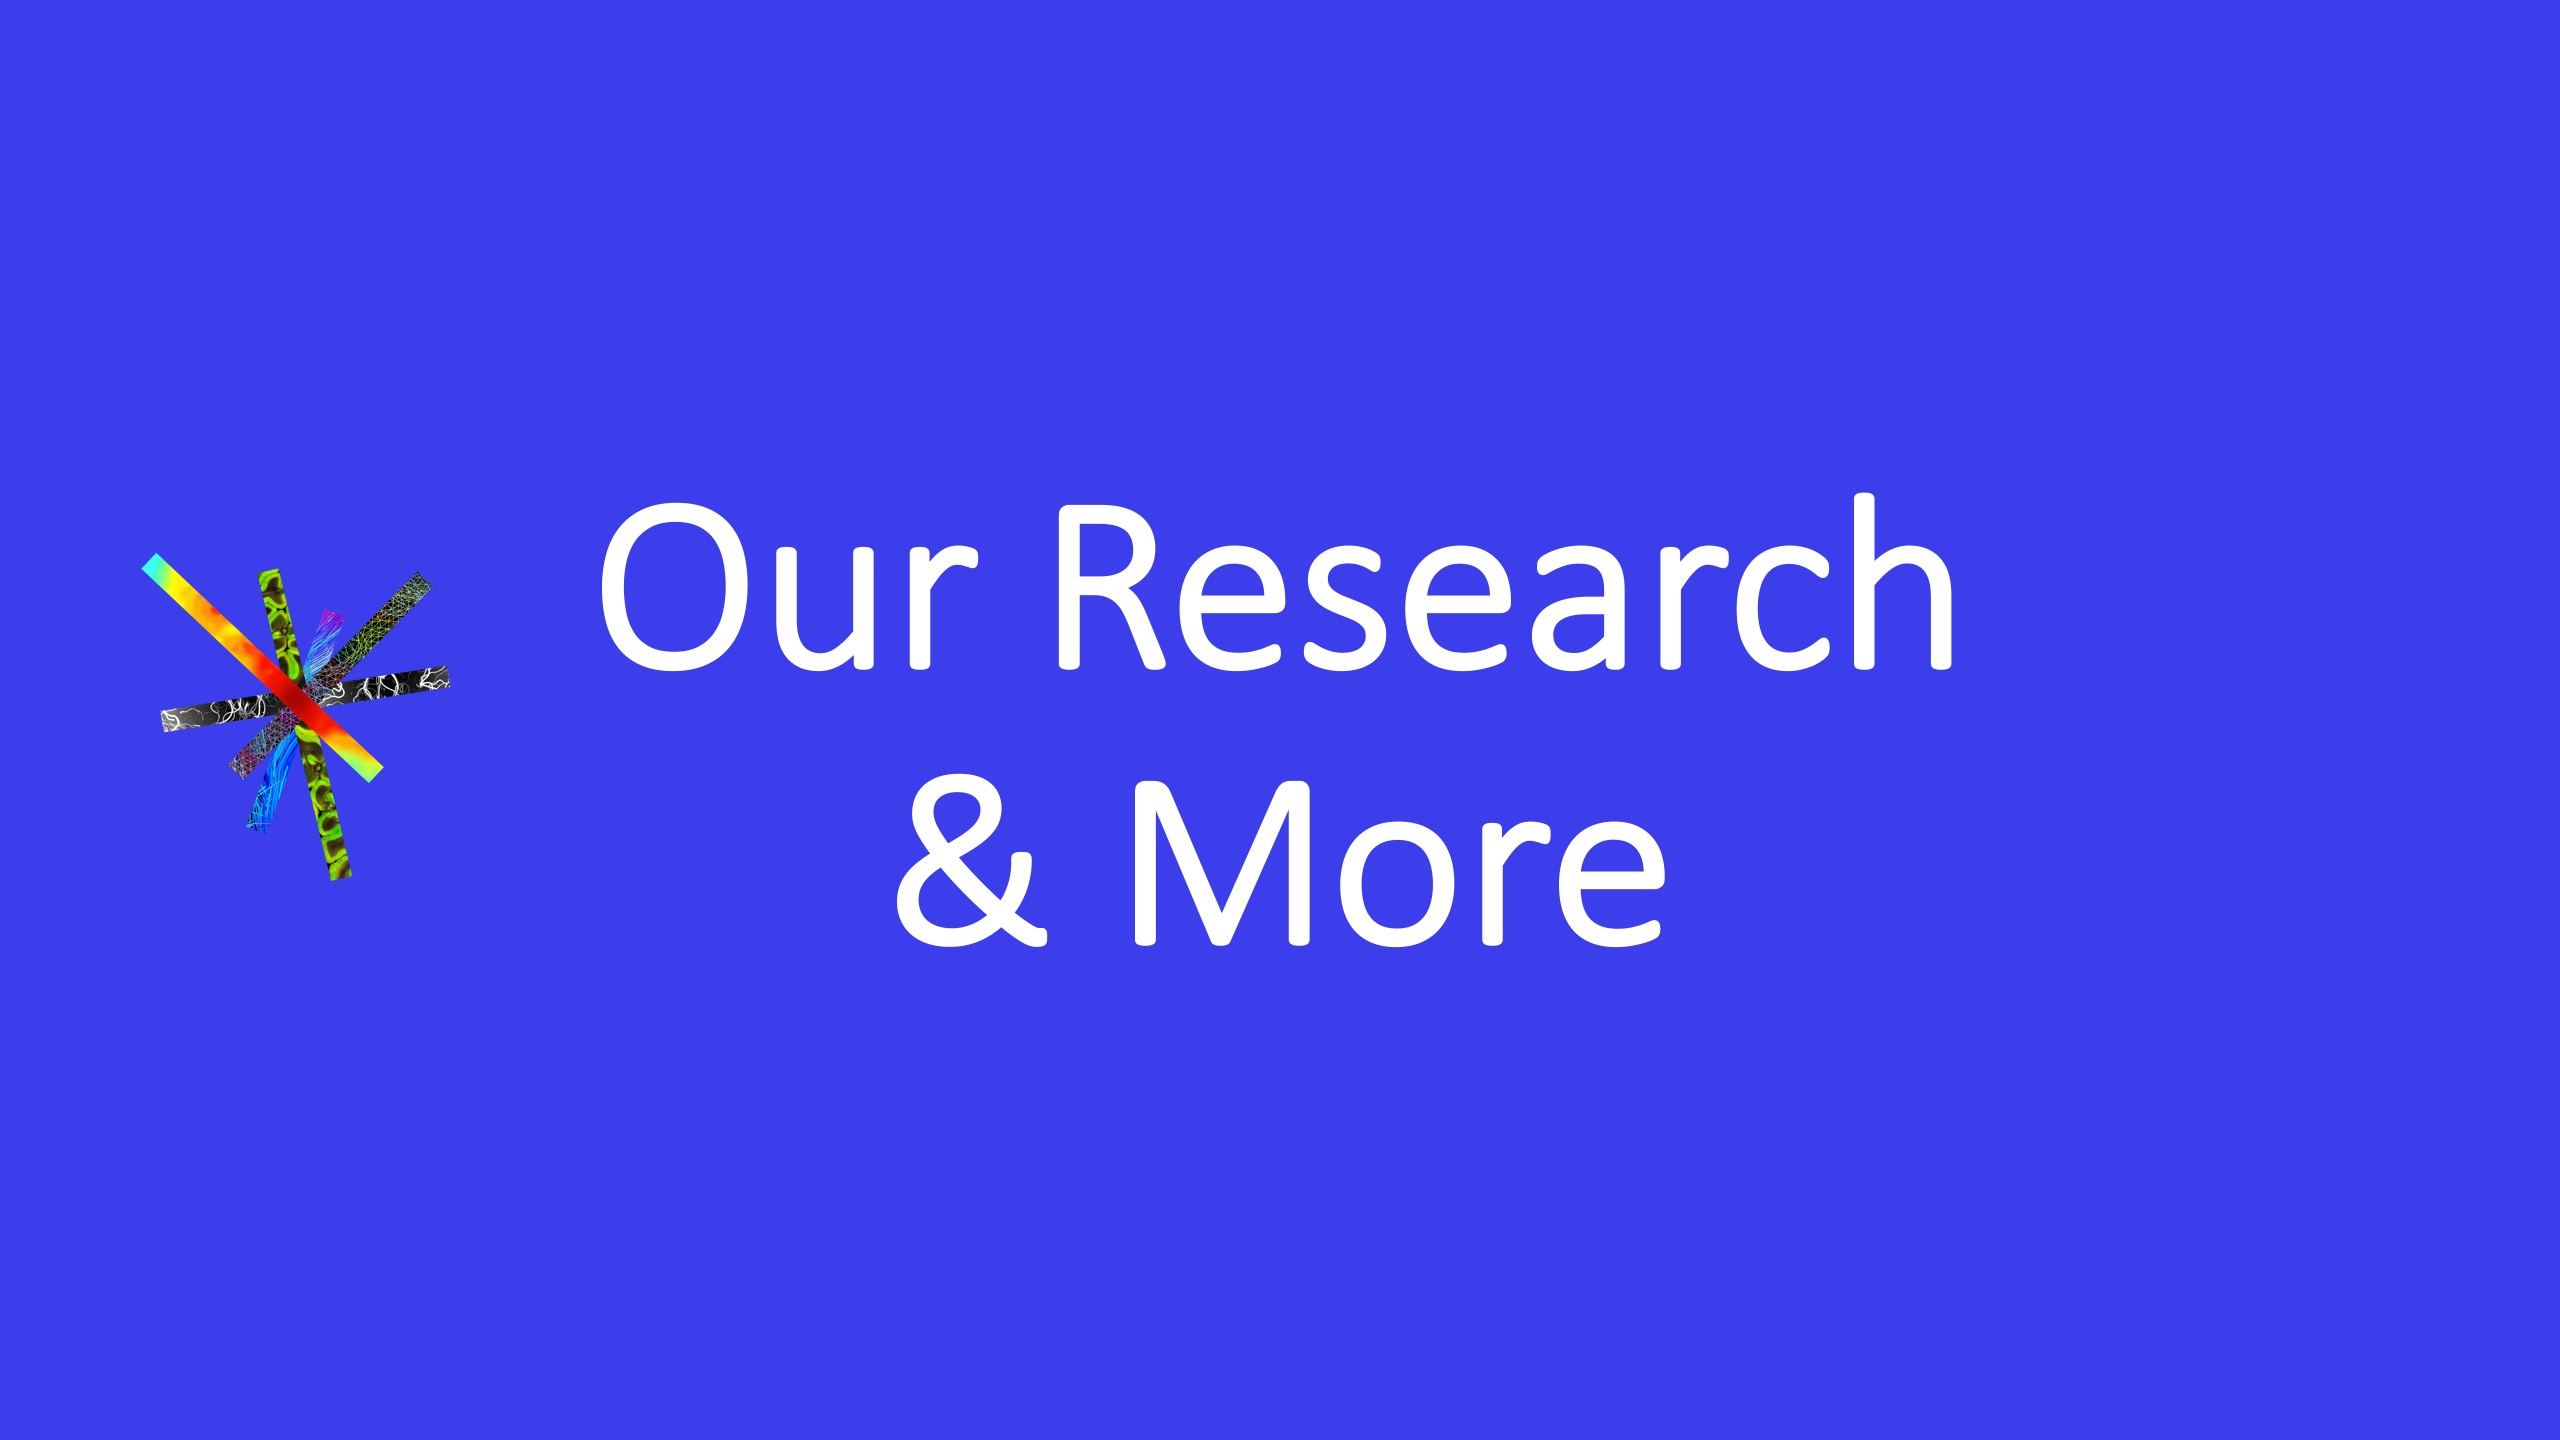 Our Research & More